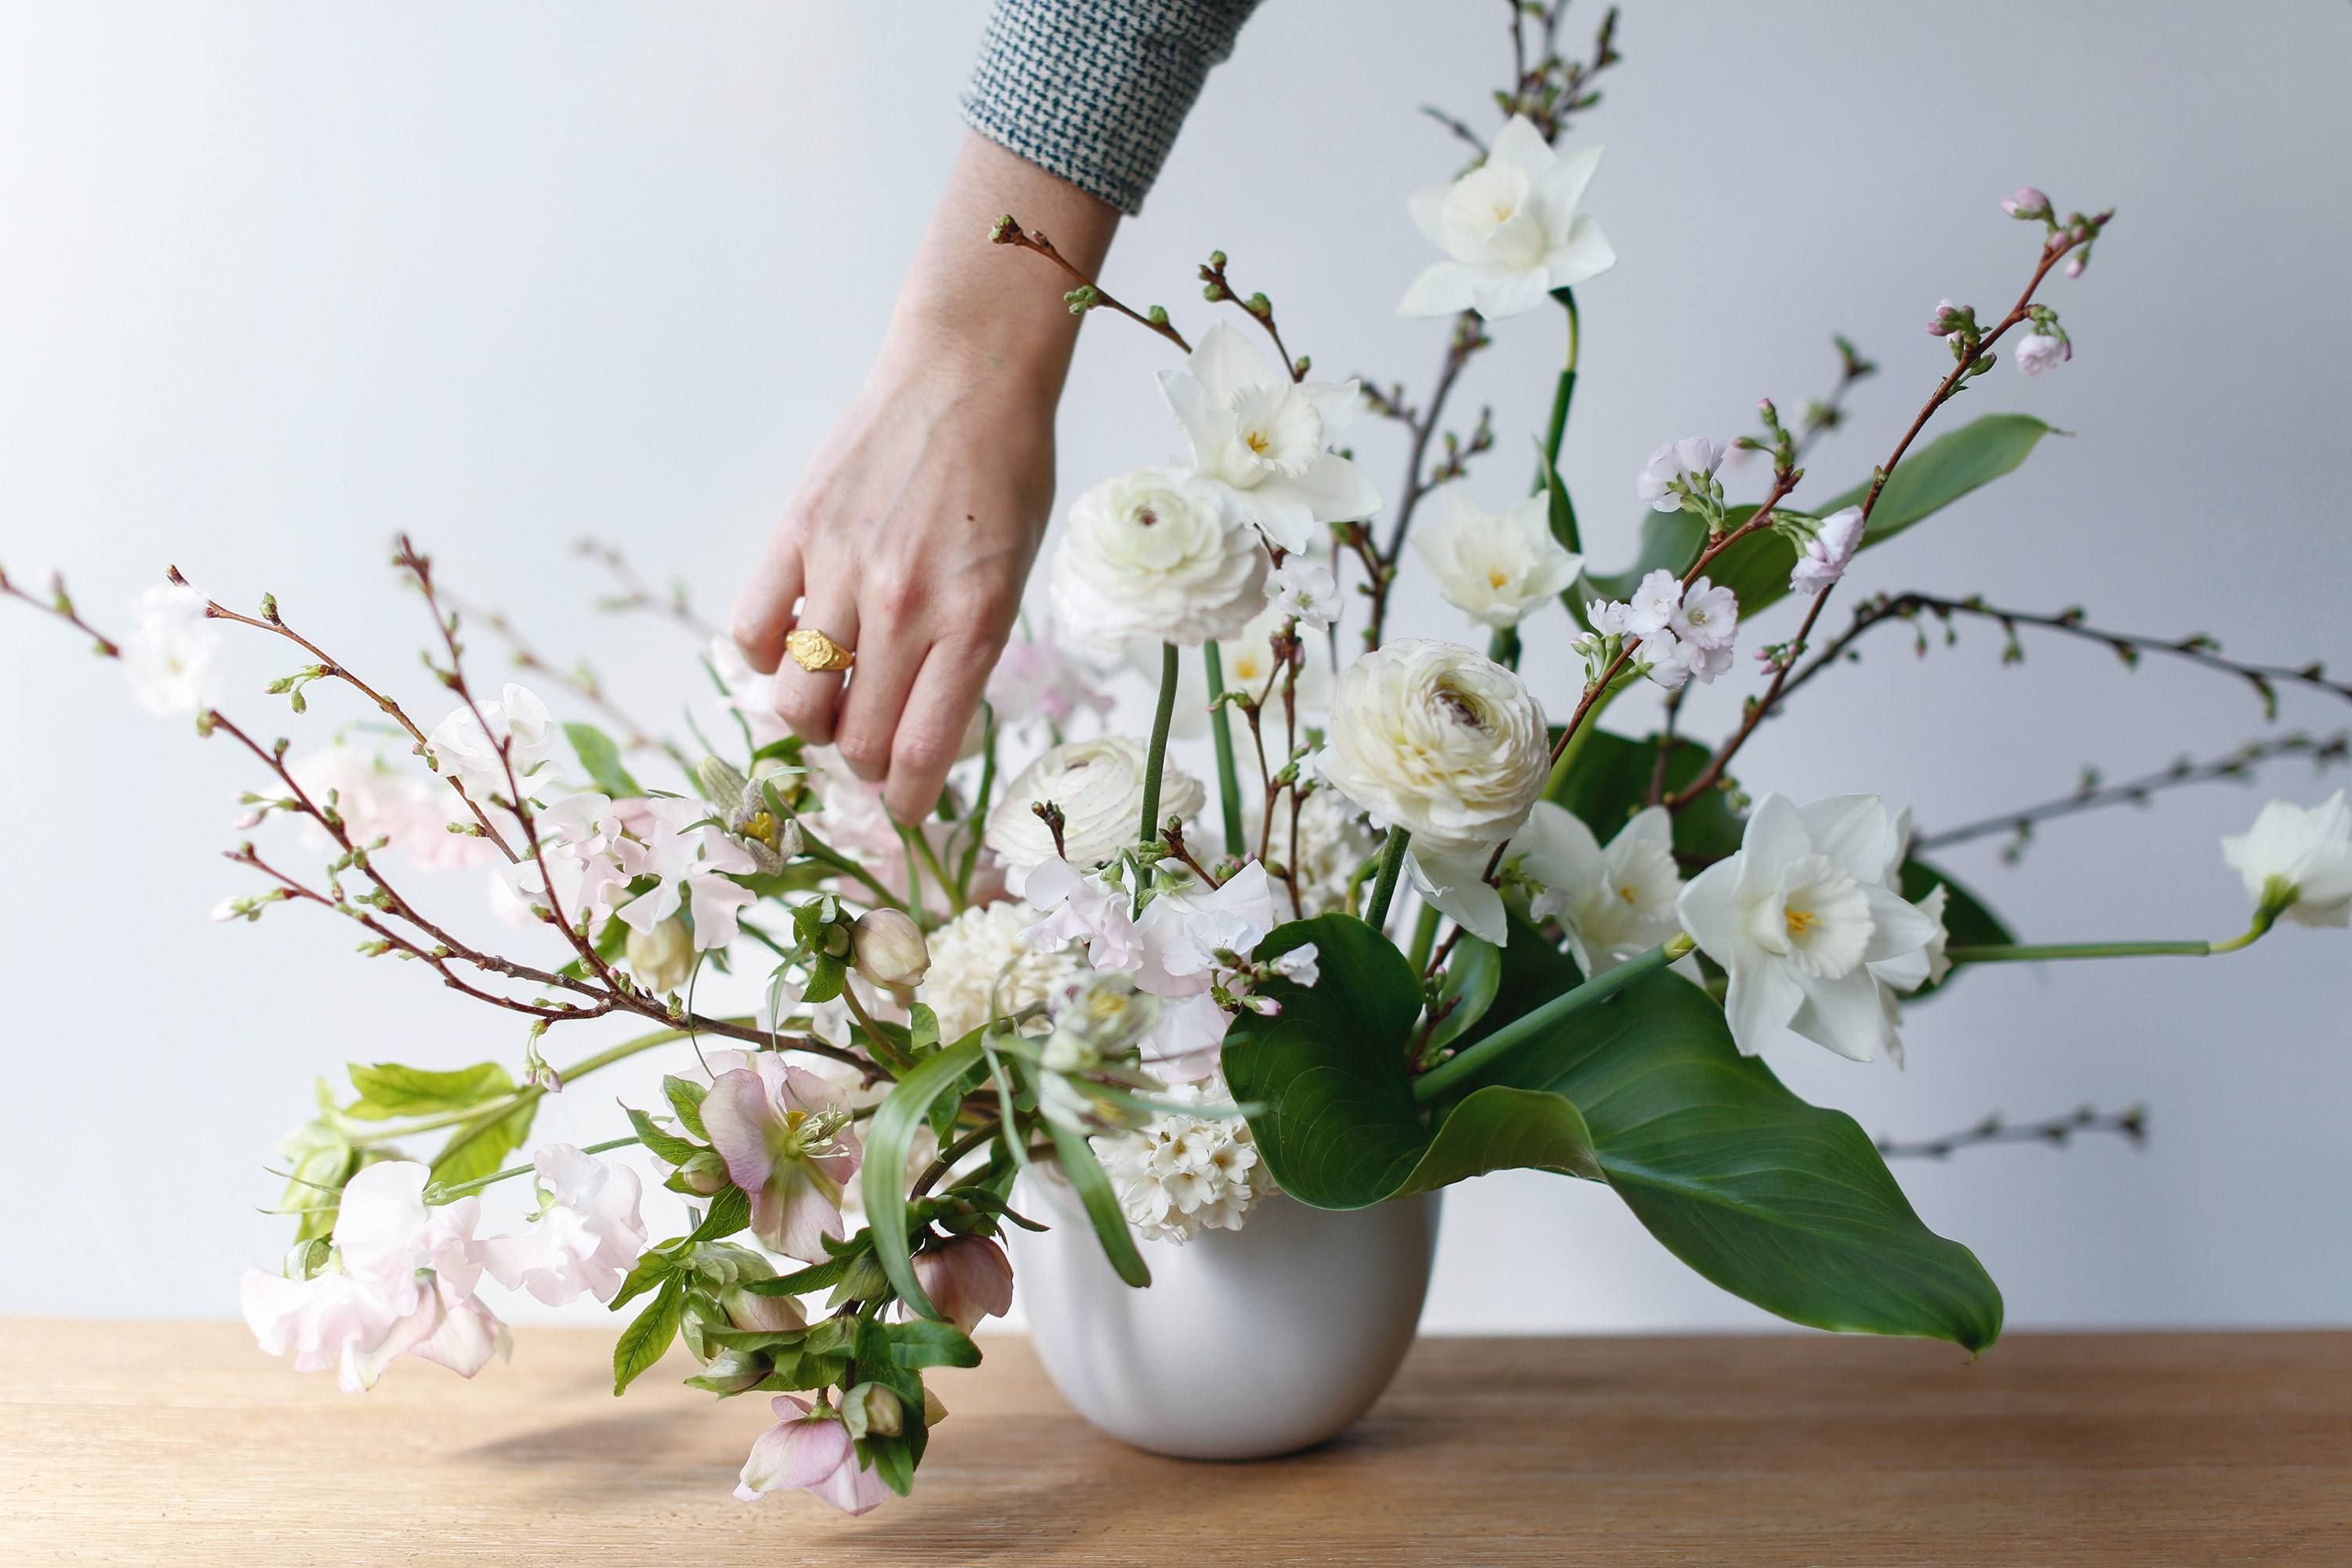 Start Here For The Basics Of Making A Tabletop Flower Arrangement A Guide To Choosi Floral Designs Arrangements Flower Arrangement Designs Flower Arrangements